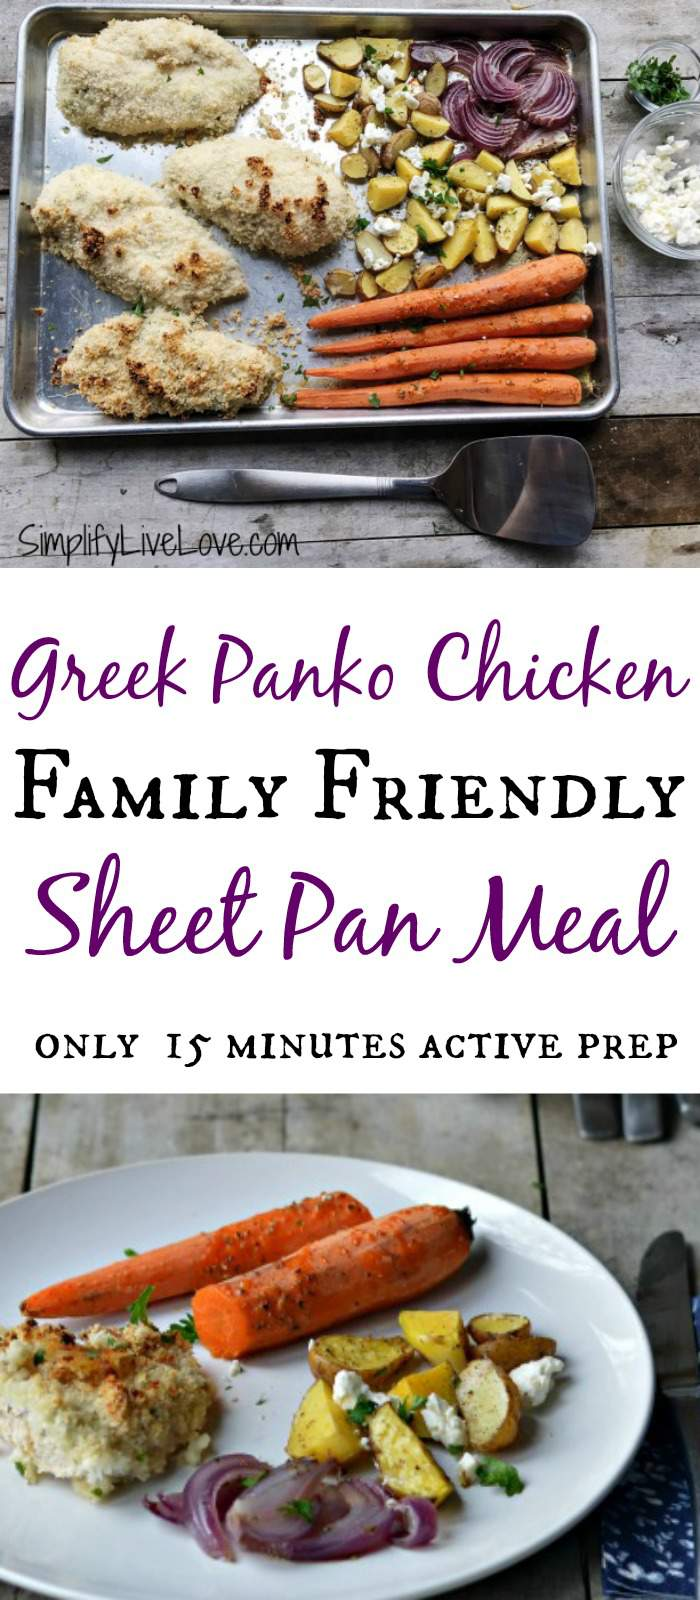 Greek Panko Chicken Sheet Pan dinner has only 15 min active prep! Easy prep, fast clean up, and quick cooking time make it a winner!